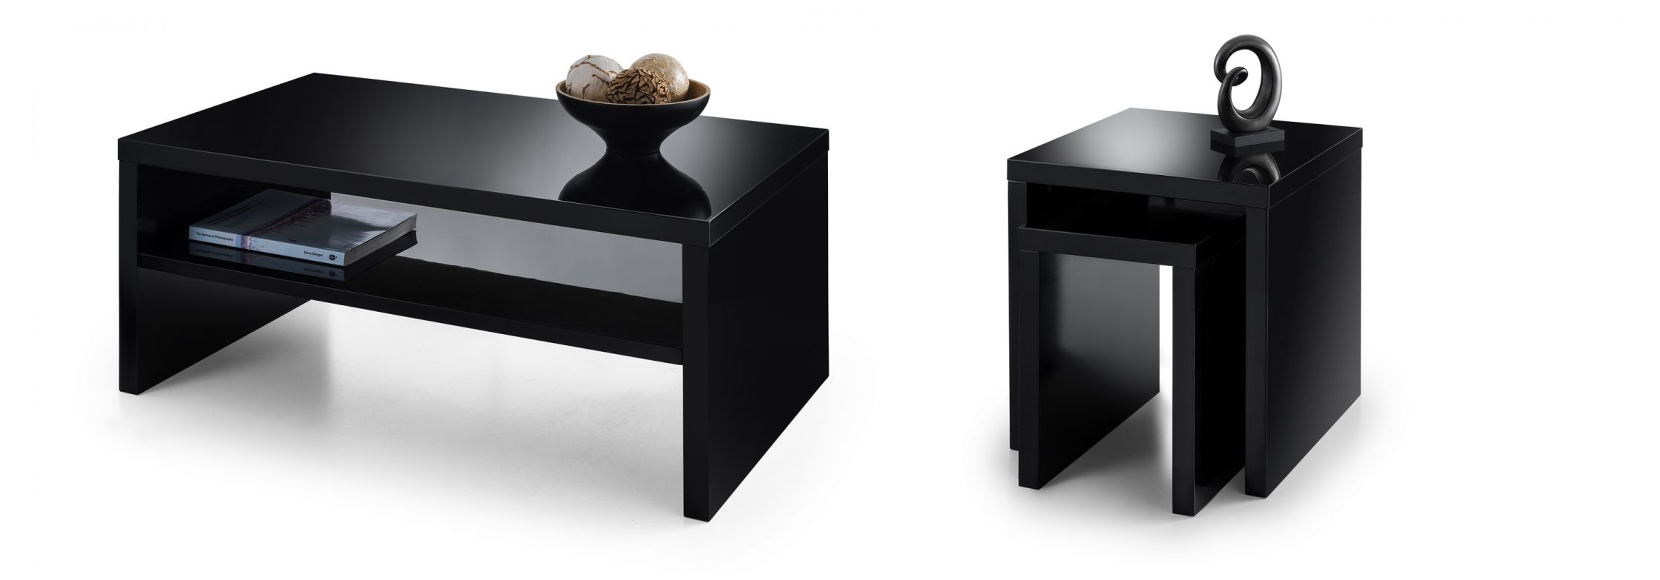 Home furniture sale thinking about buying metro high gloss